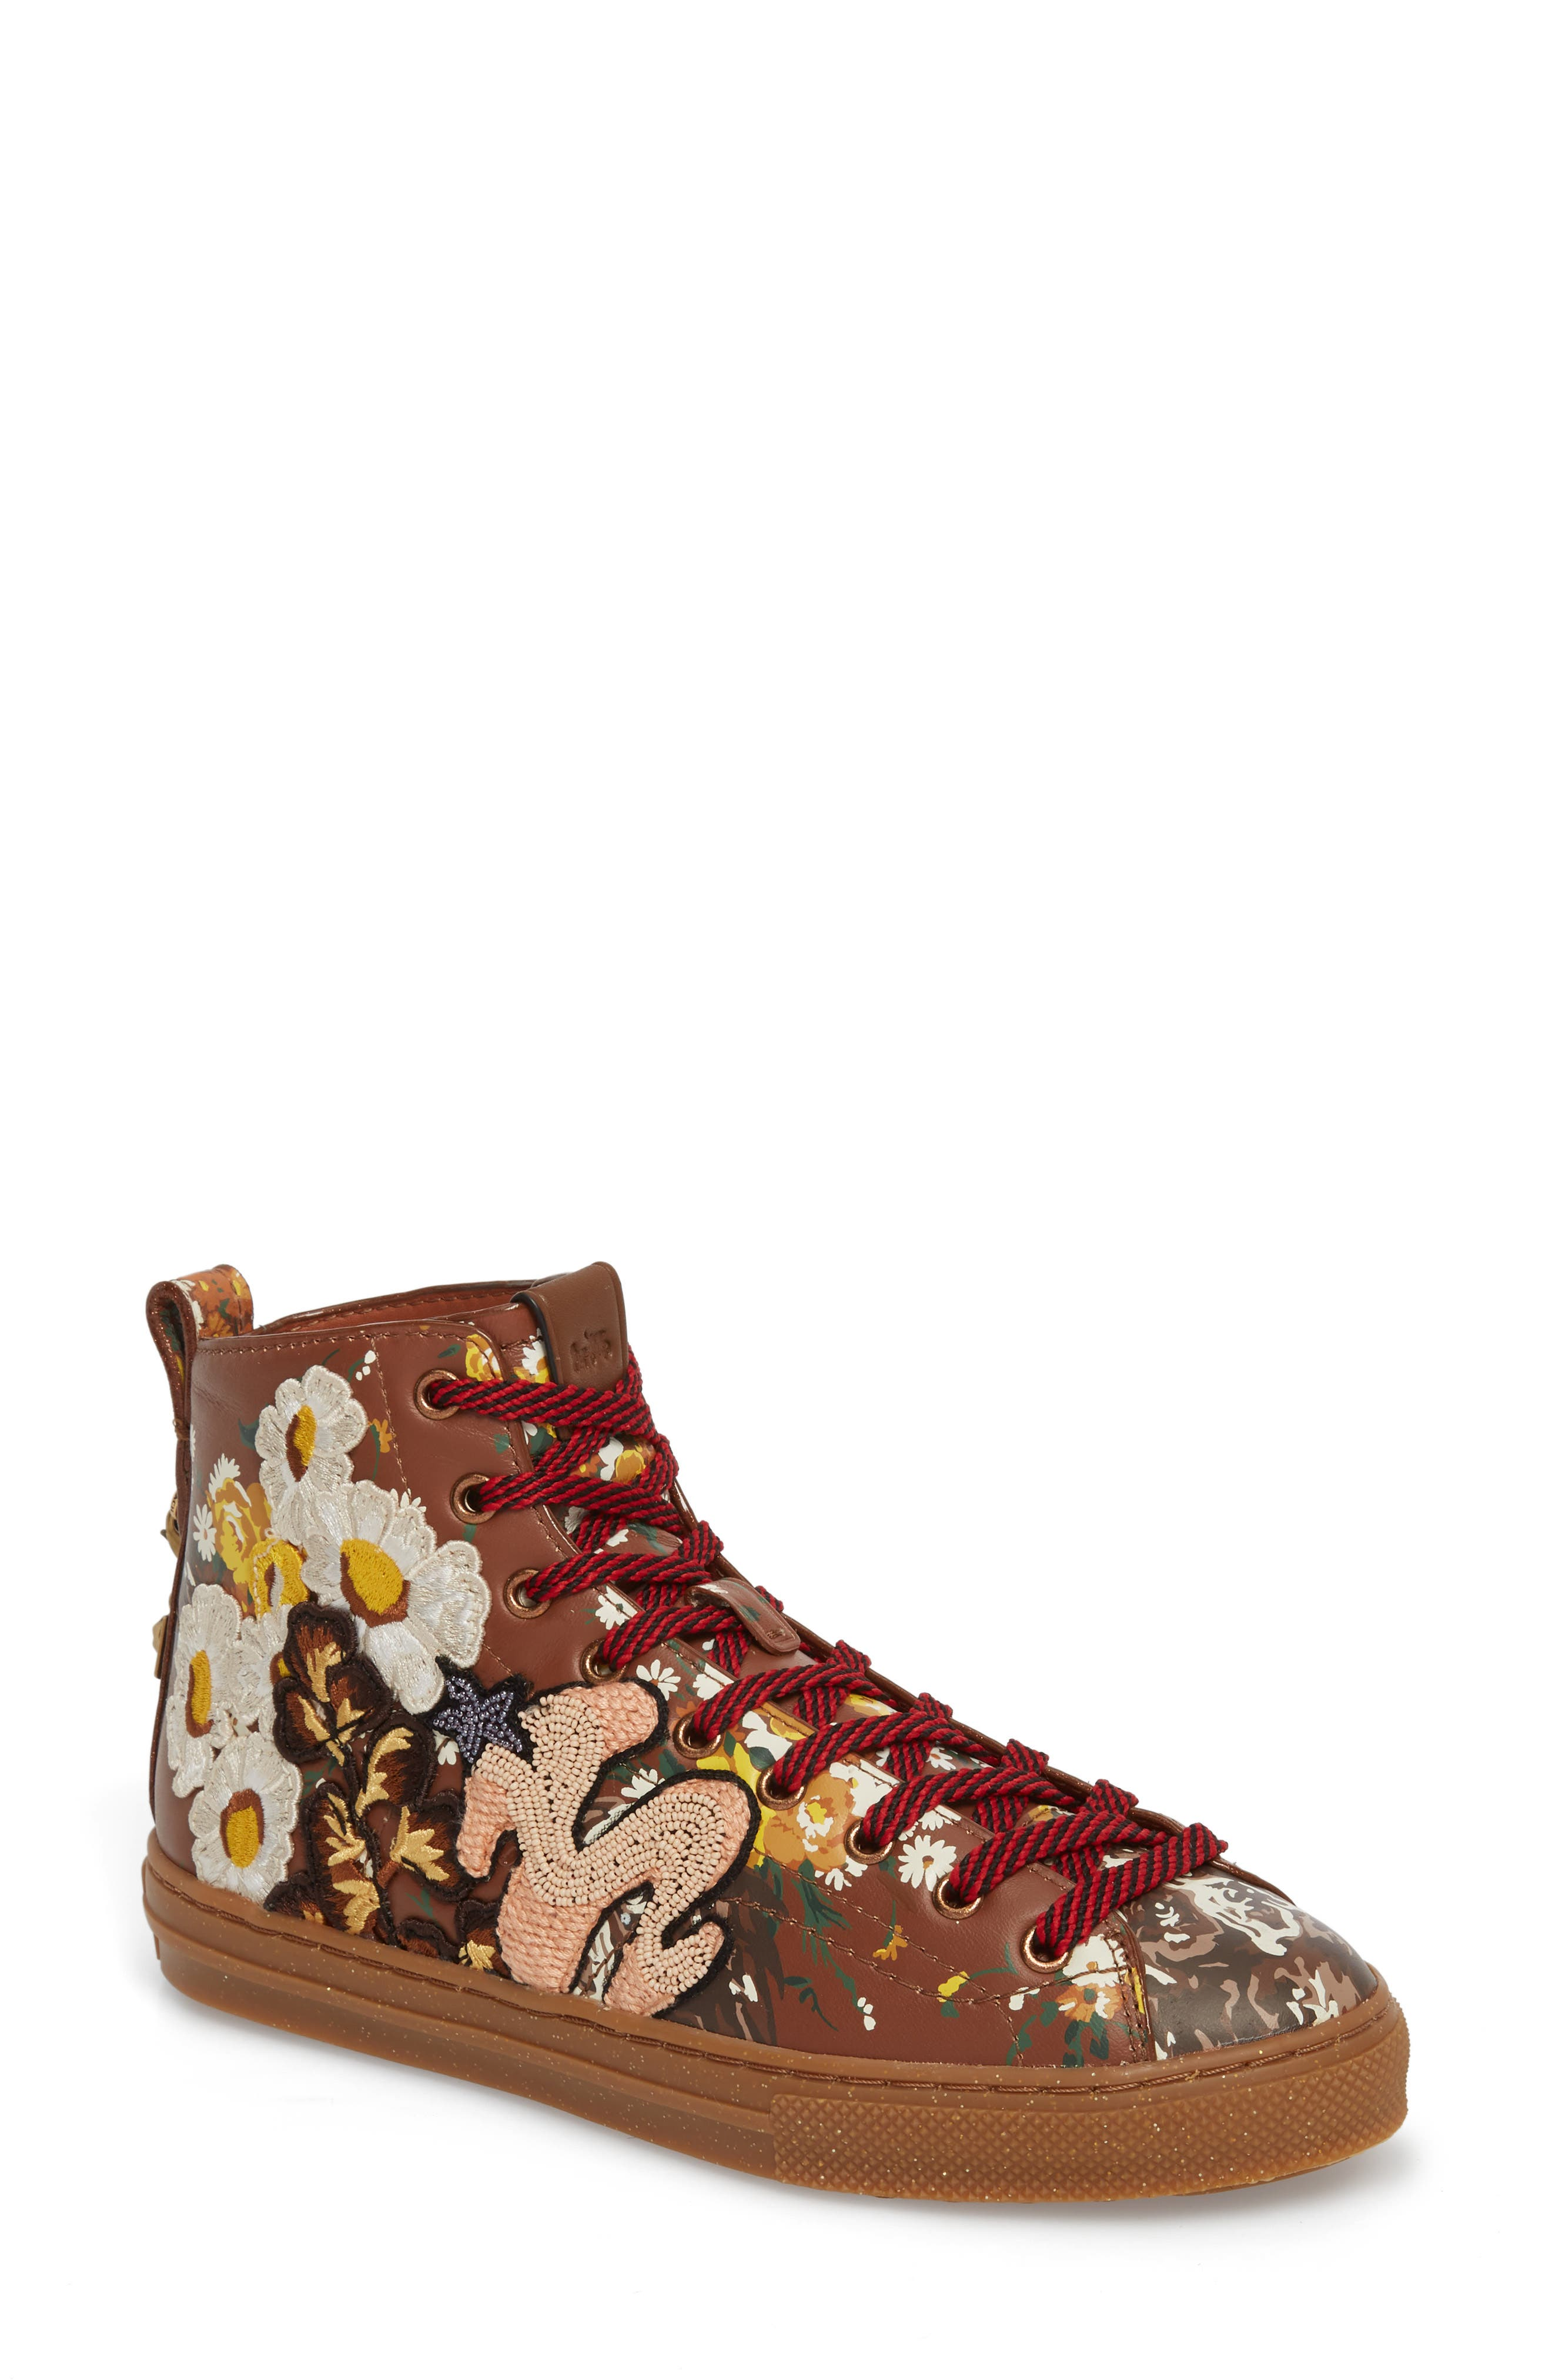 Flower Patch High Top Sneaker,                             Main thumbnail 1, color,                             Teak Leather